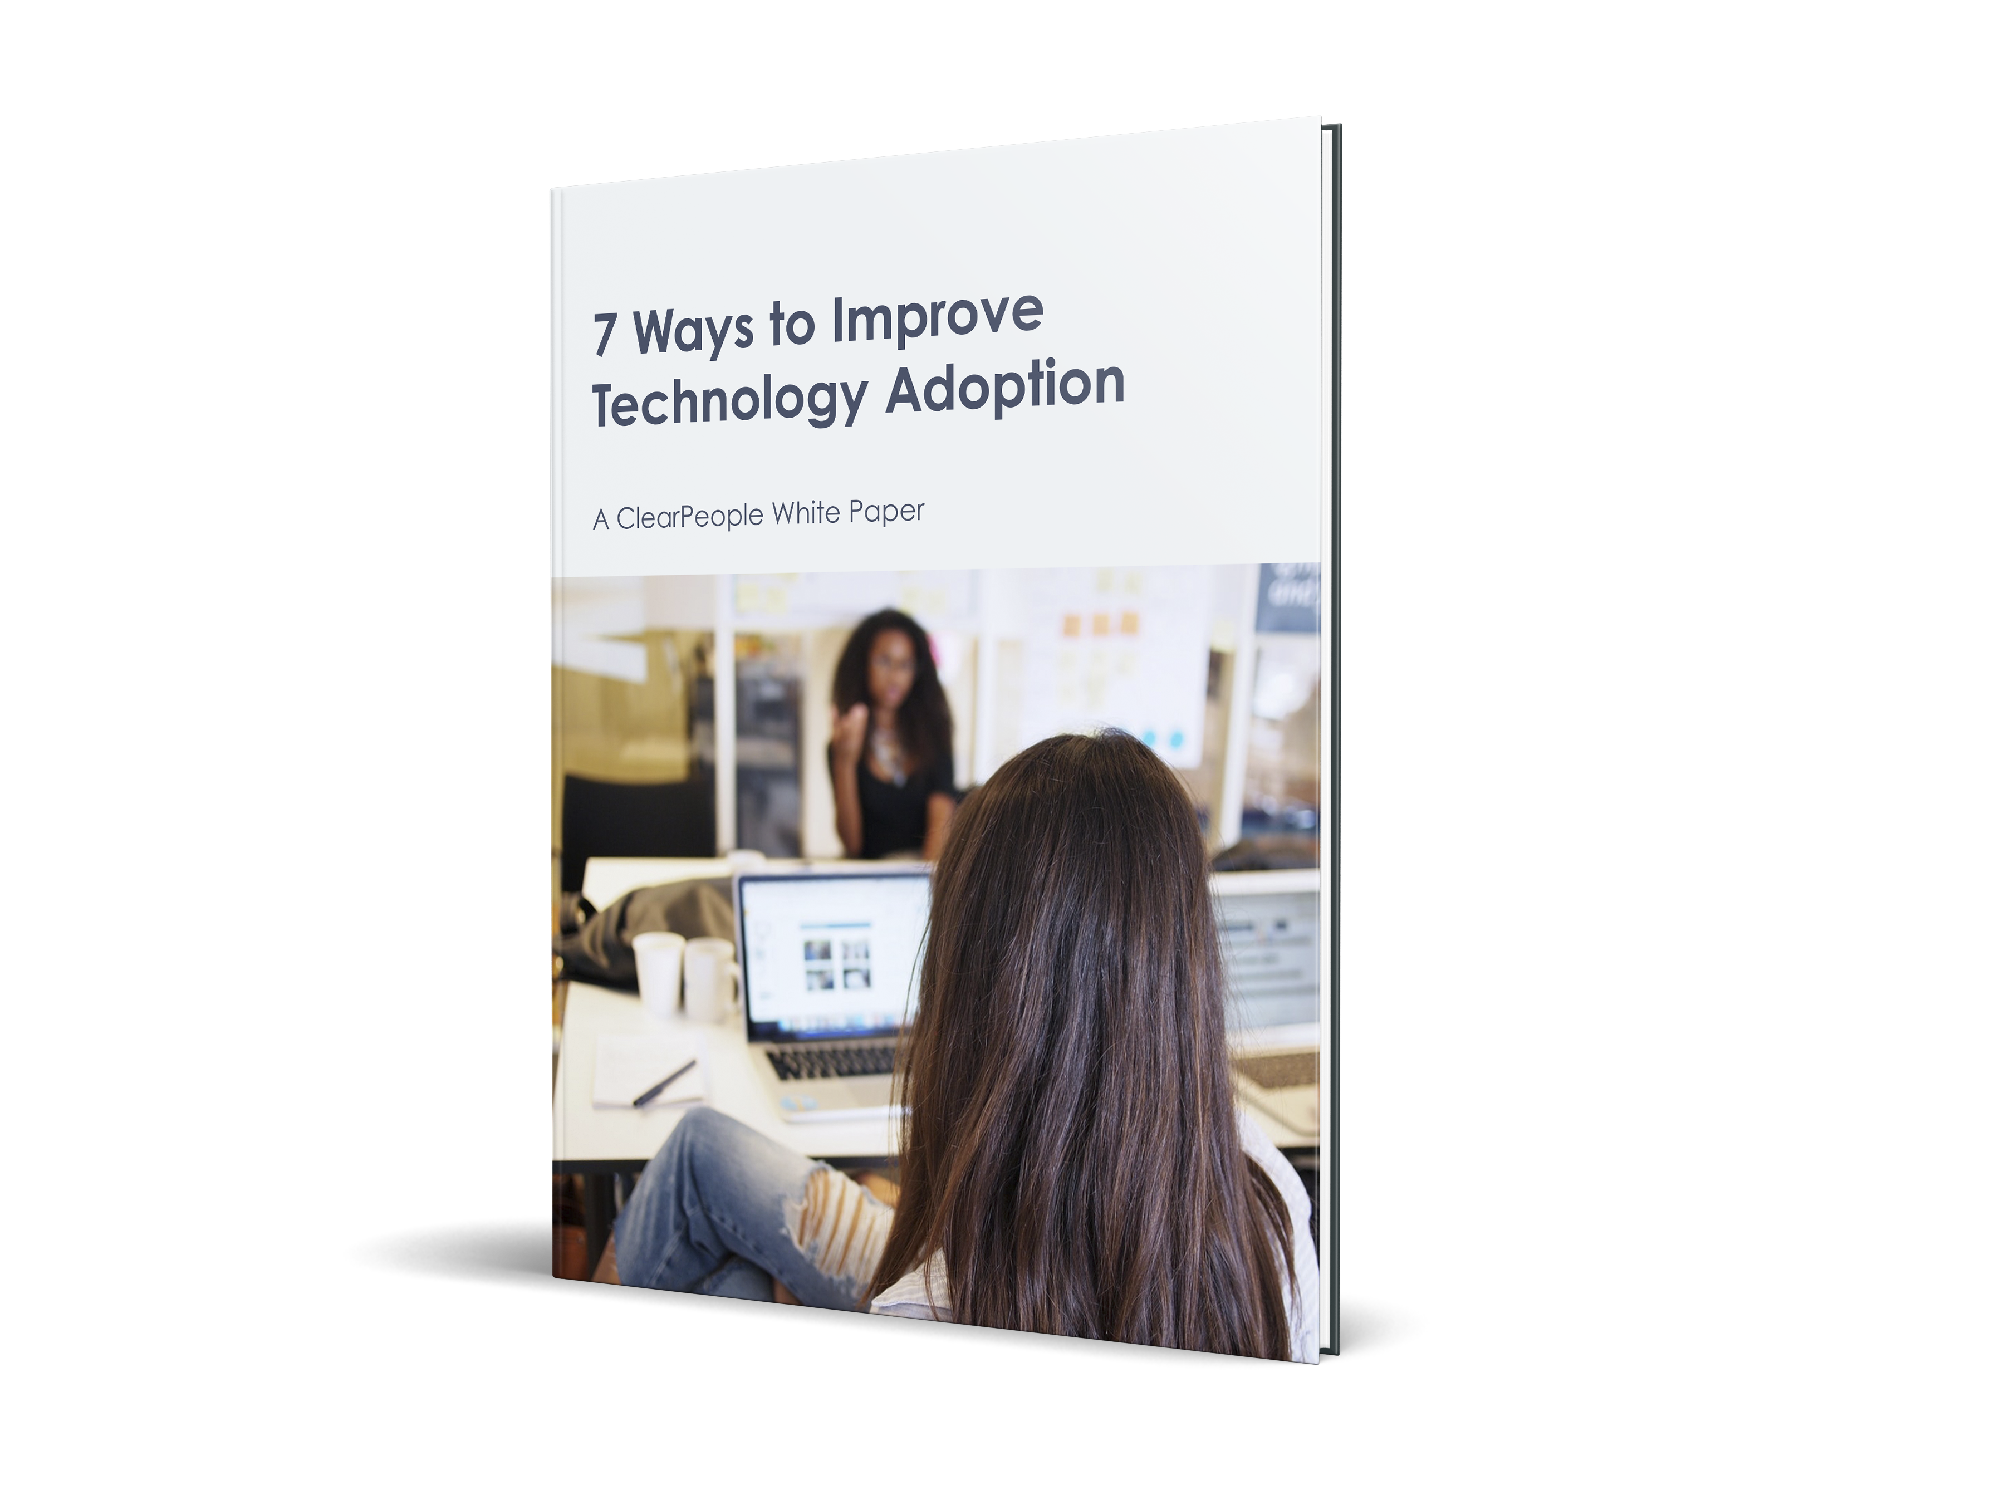 ClearPeople White Paper 7 ways to improve technology adoption